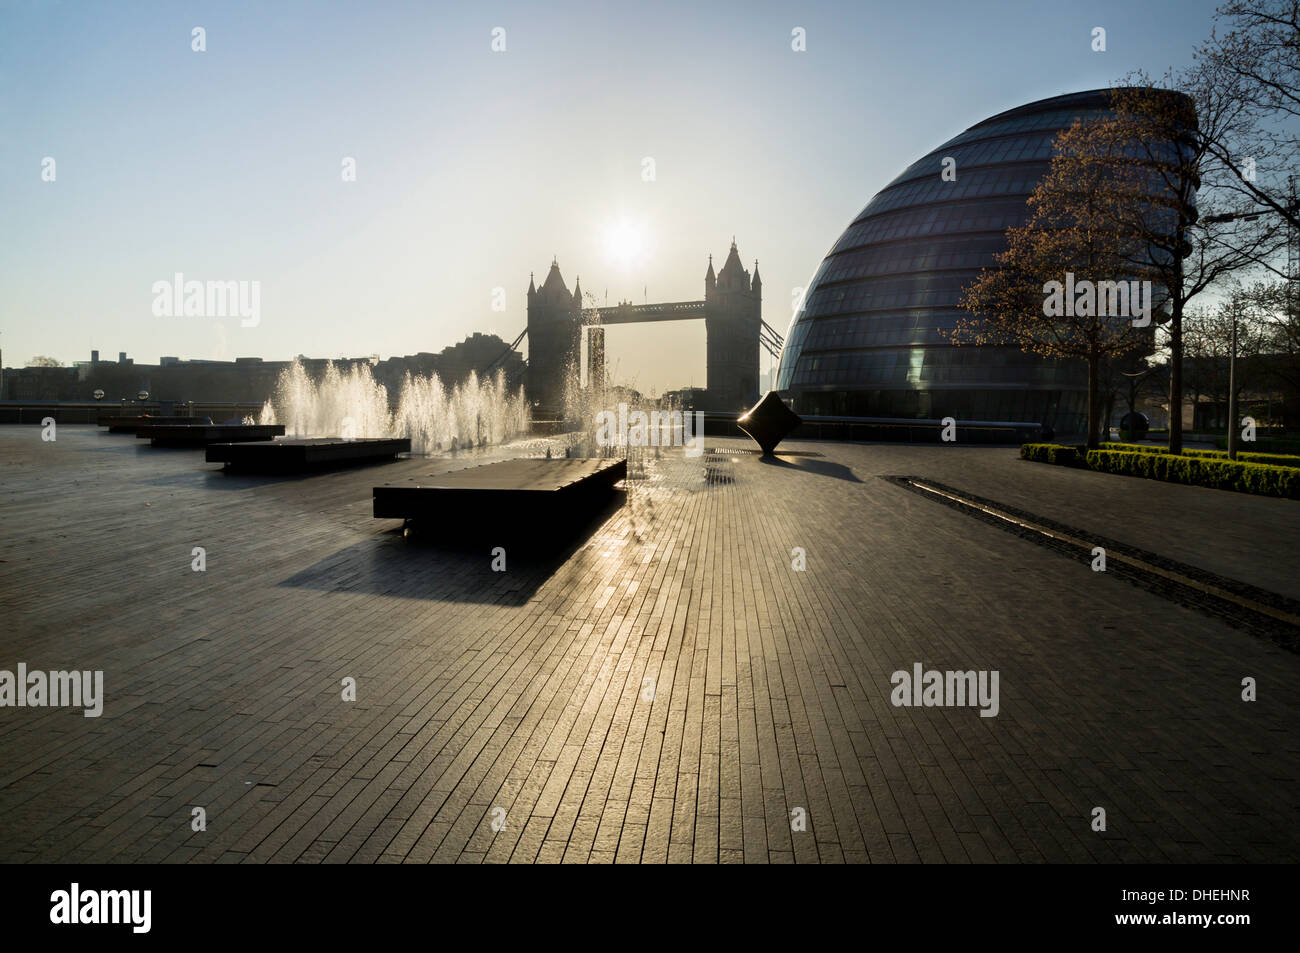 Fountains glisten at More Place with City Hall and Tower Bridge behind, London, England, United Kingdom, Europe - Stock Image